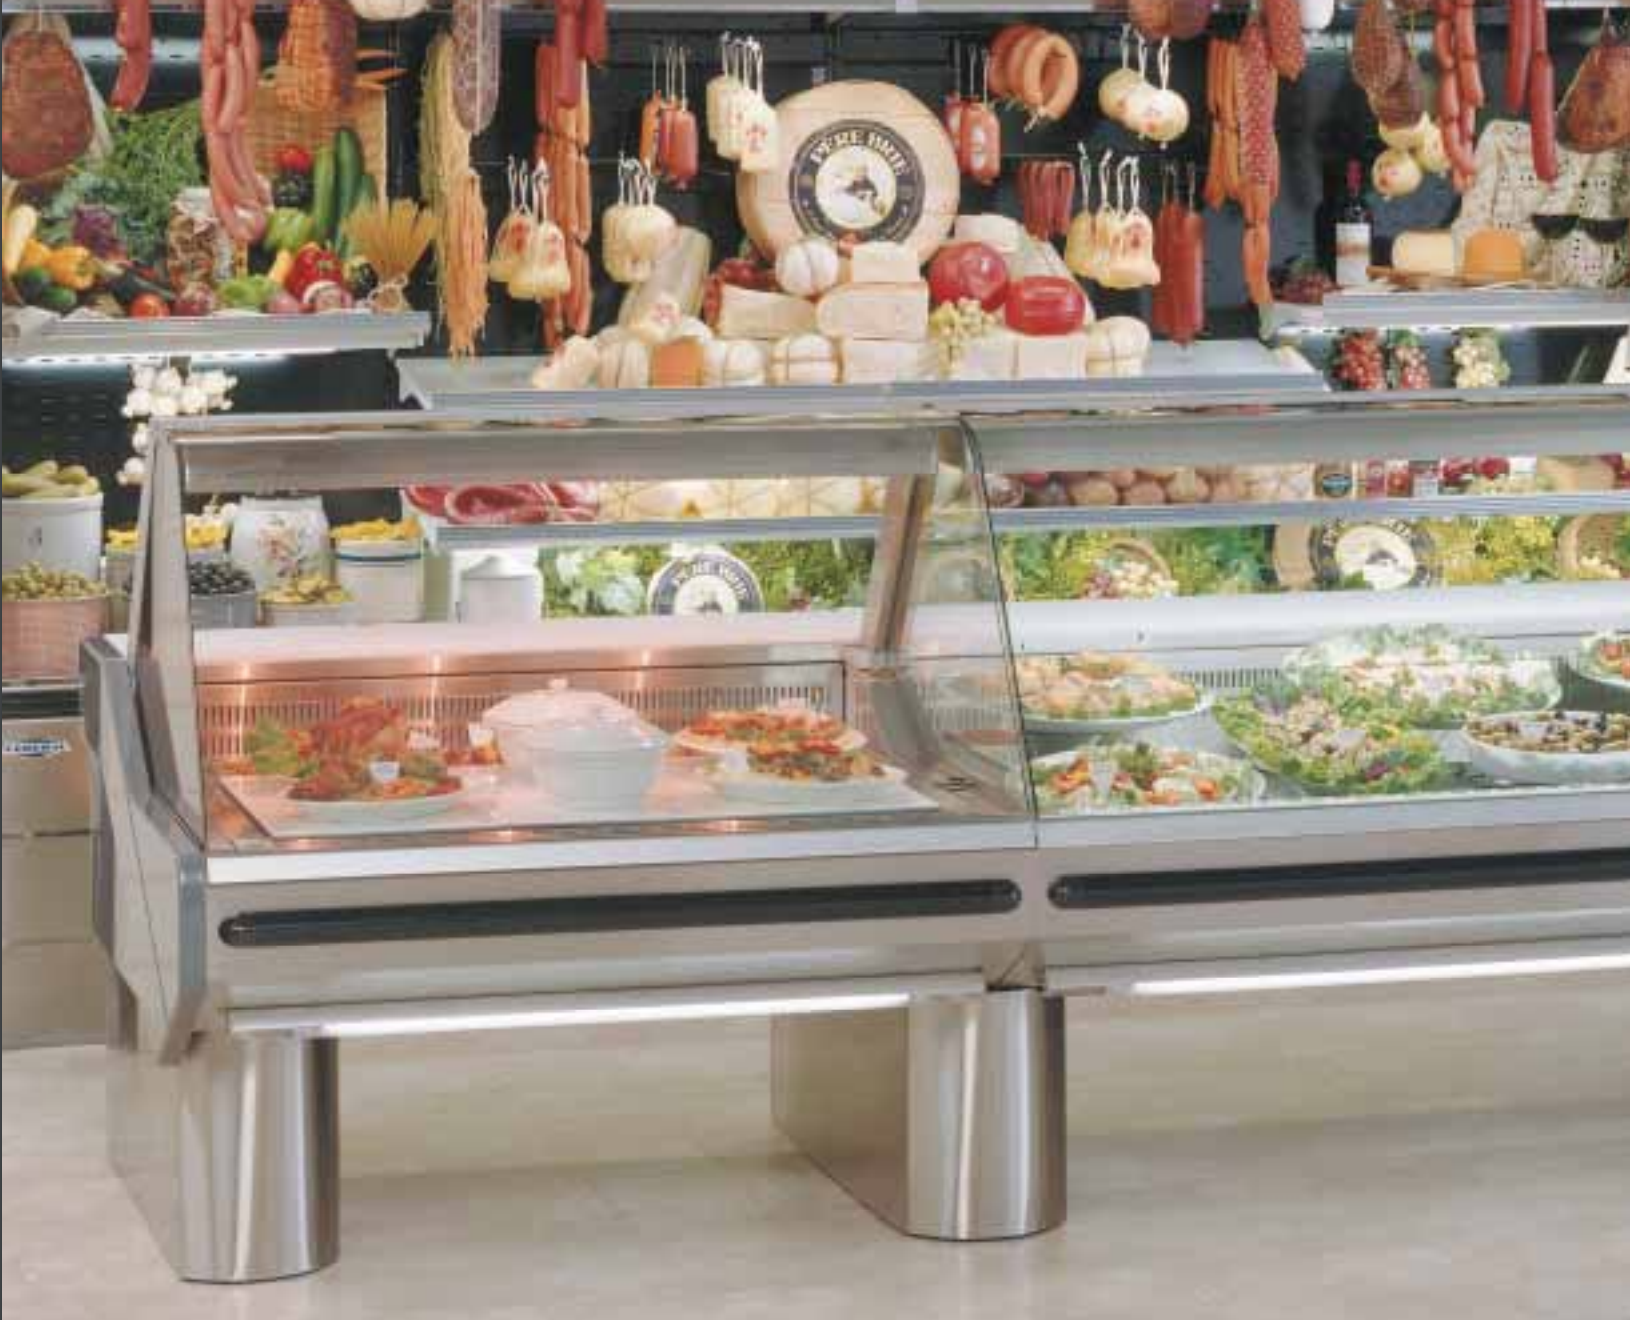 Four Tips for Food Displays